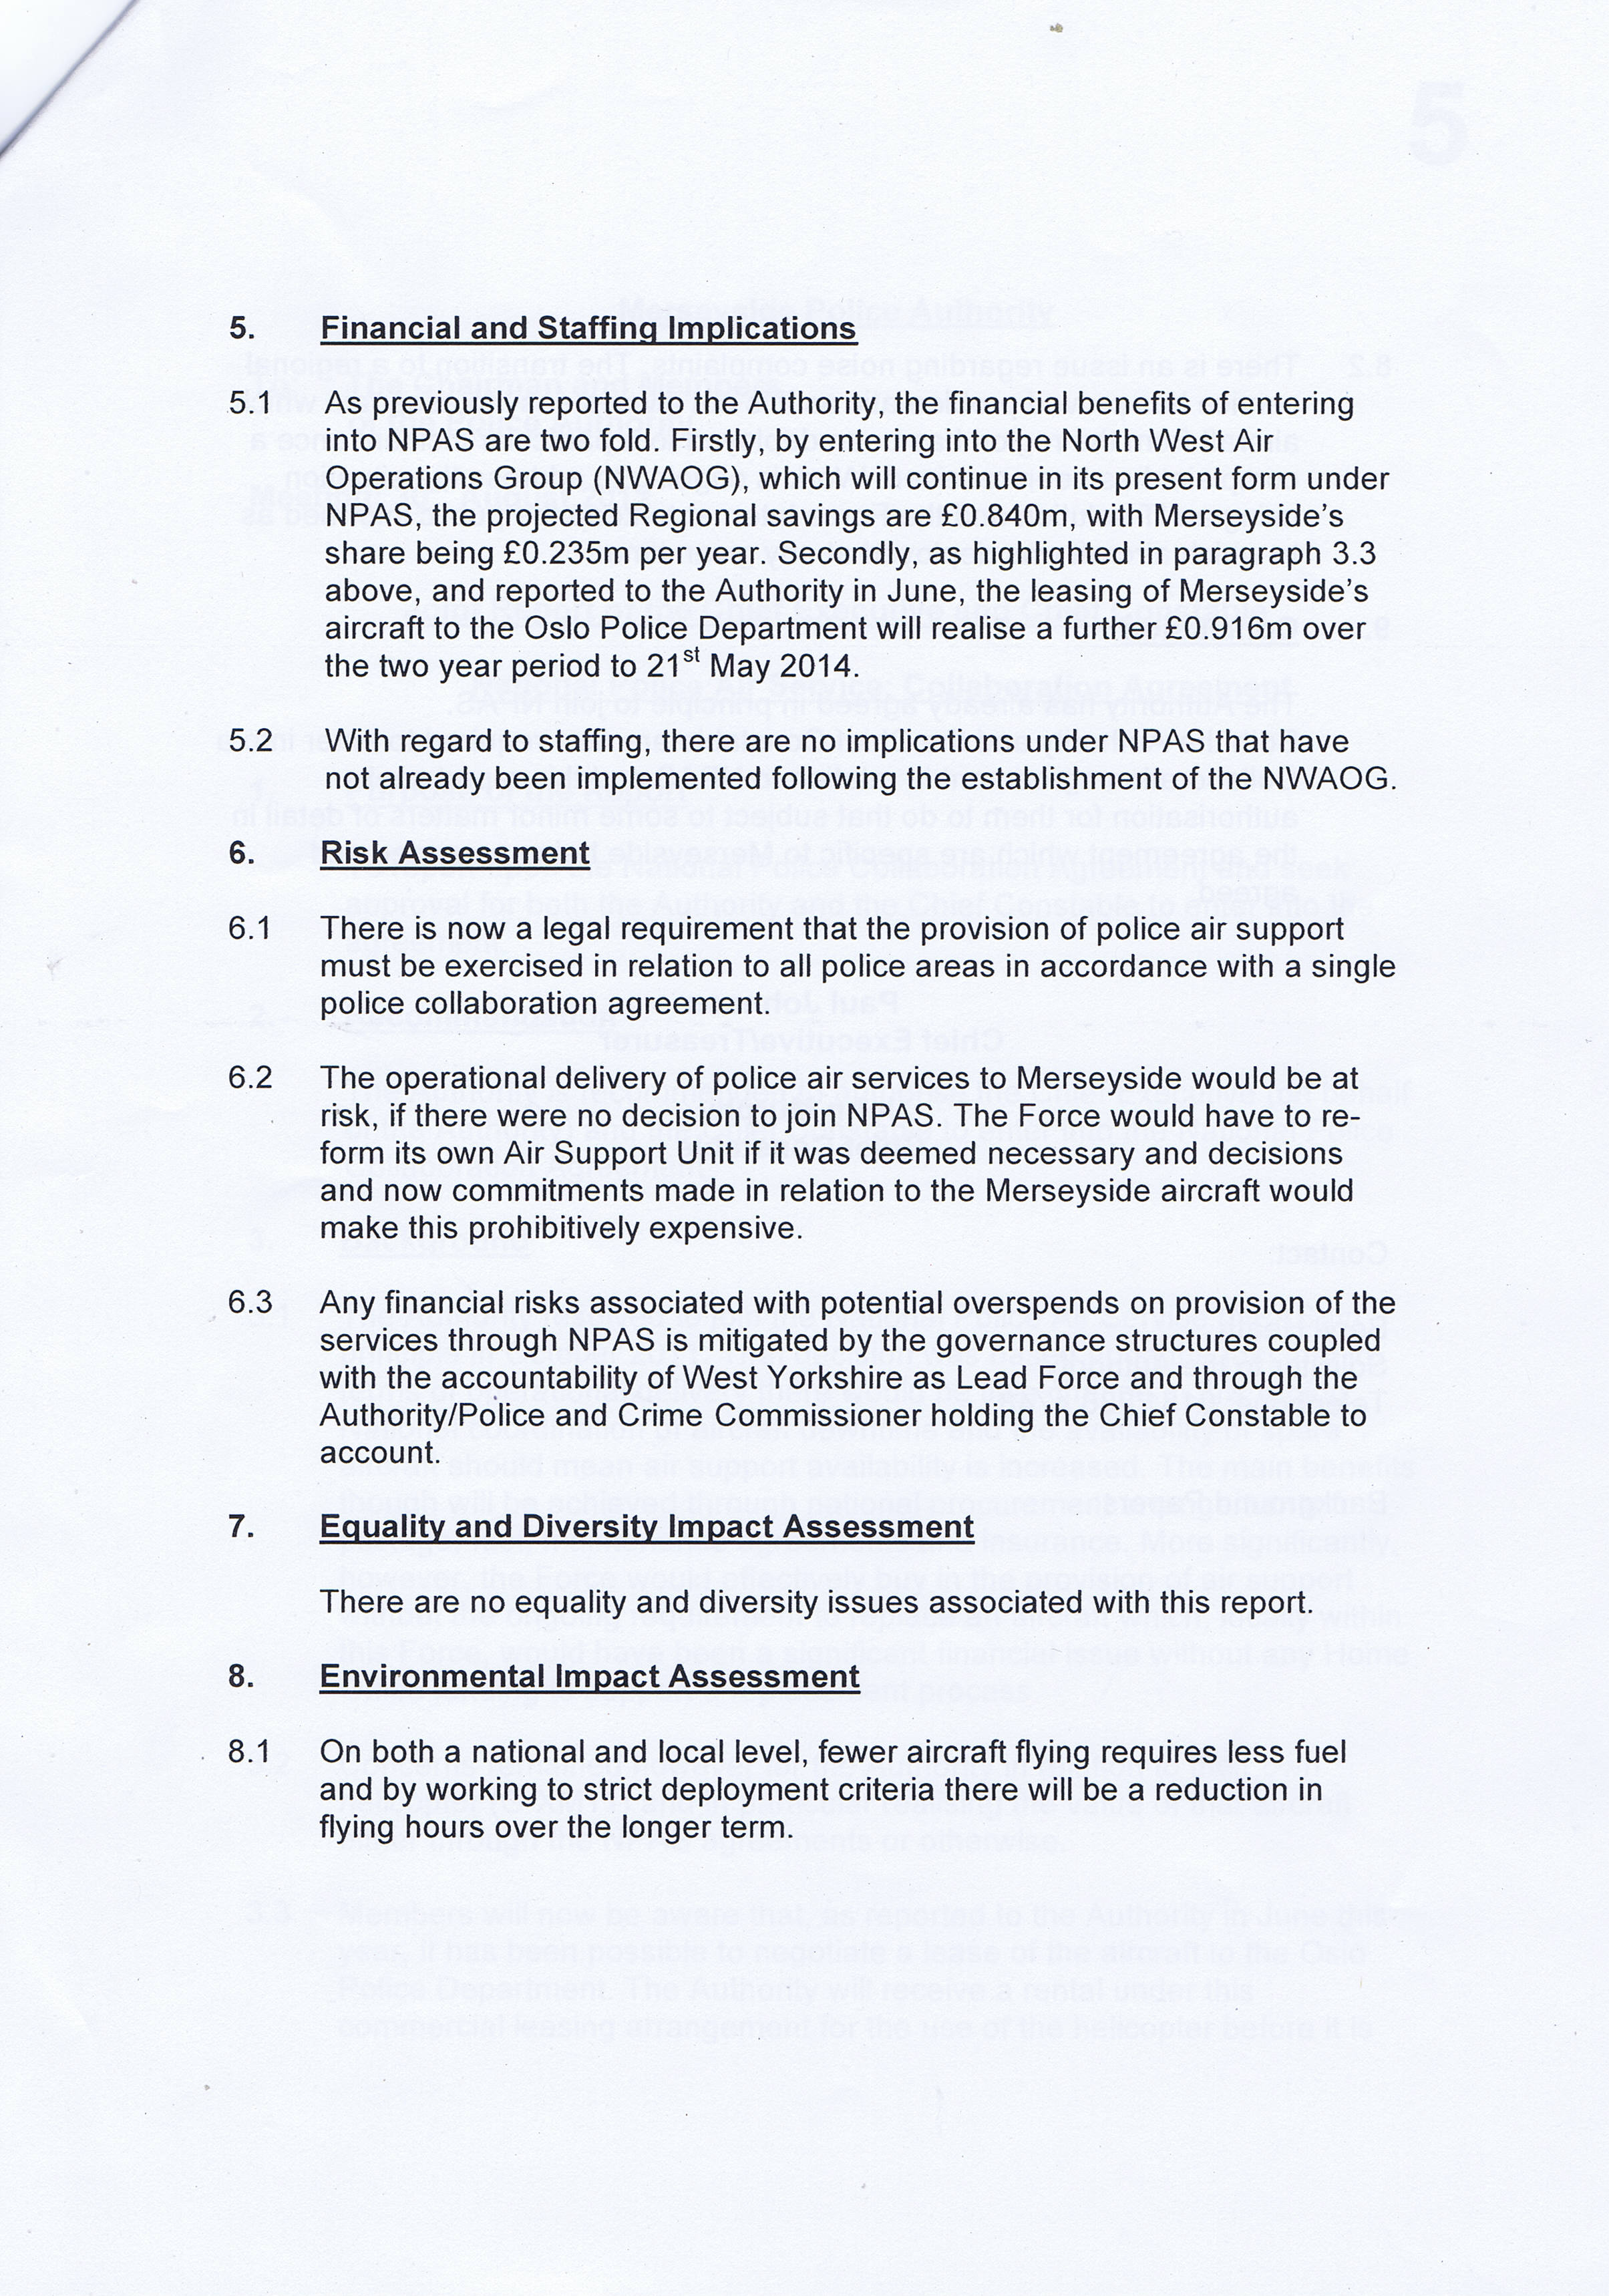 cpo meeting minutes Meeting minutes 12 june 2009 minutes 13 november 2008 minutes 4 june 2008 minutes 21 may 2008 agenda - no minutes due to meeting being held in base theater 7 may 2008 minutes 23 april 2008 minutes 9 april 2008 minutes 26 march 2008 minutes 26 cpo selection boards enlisted.